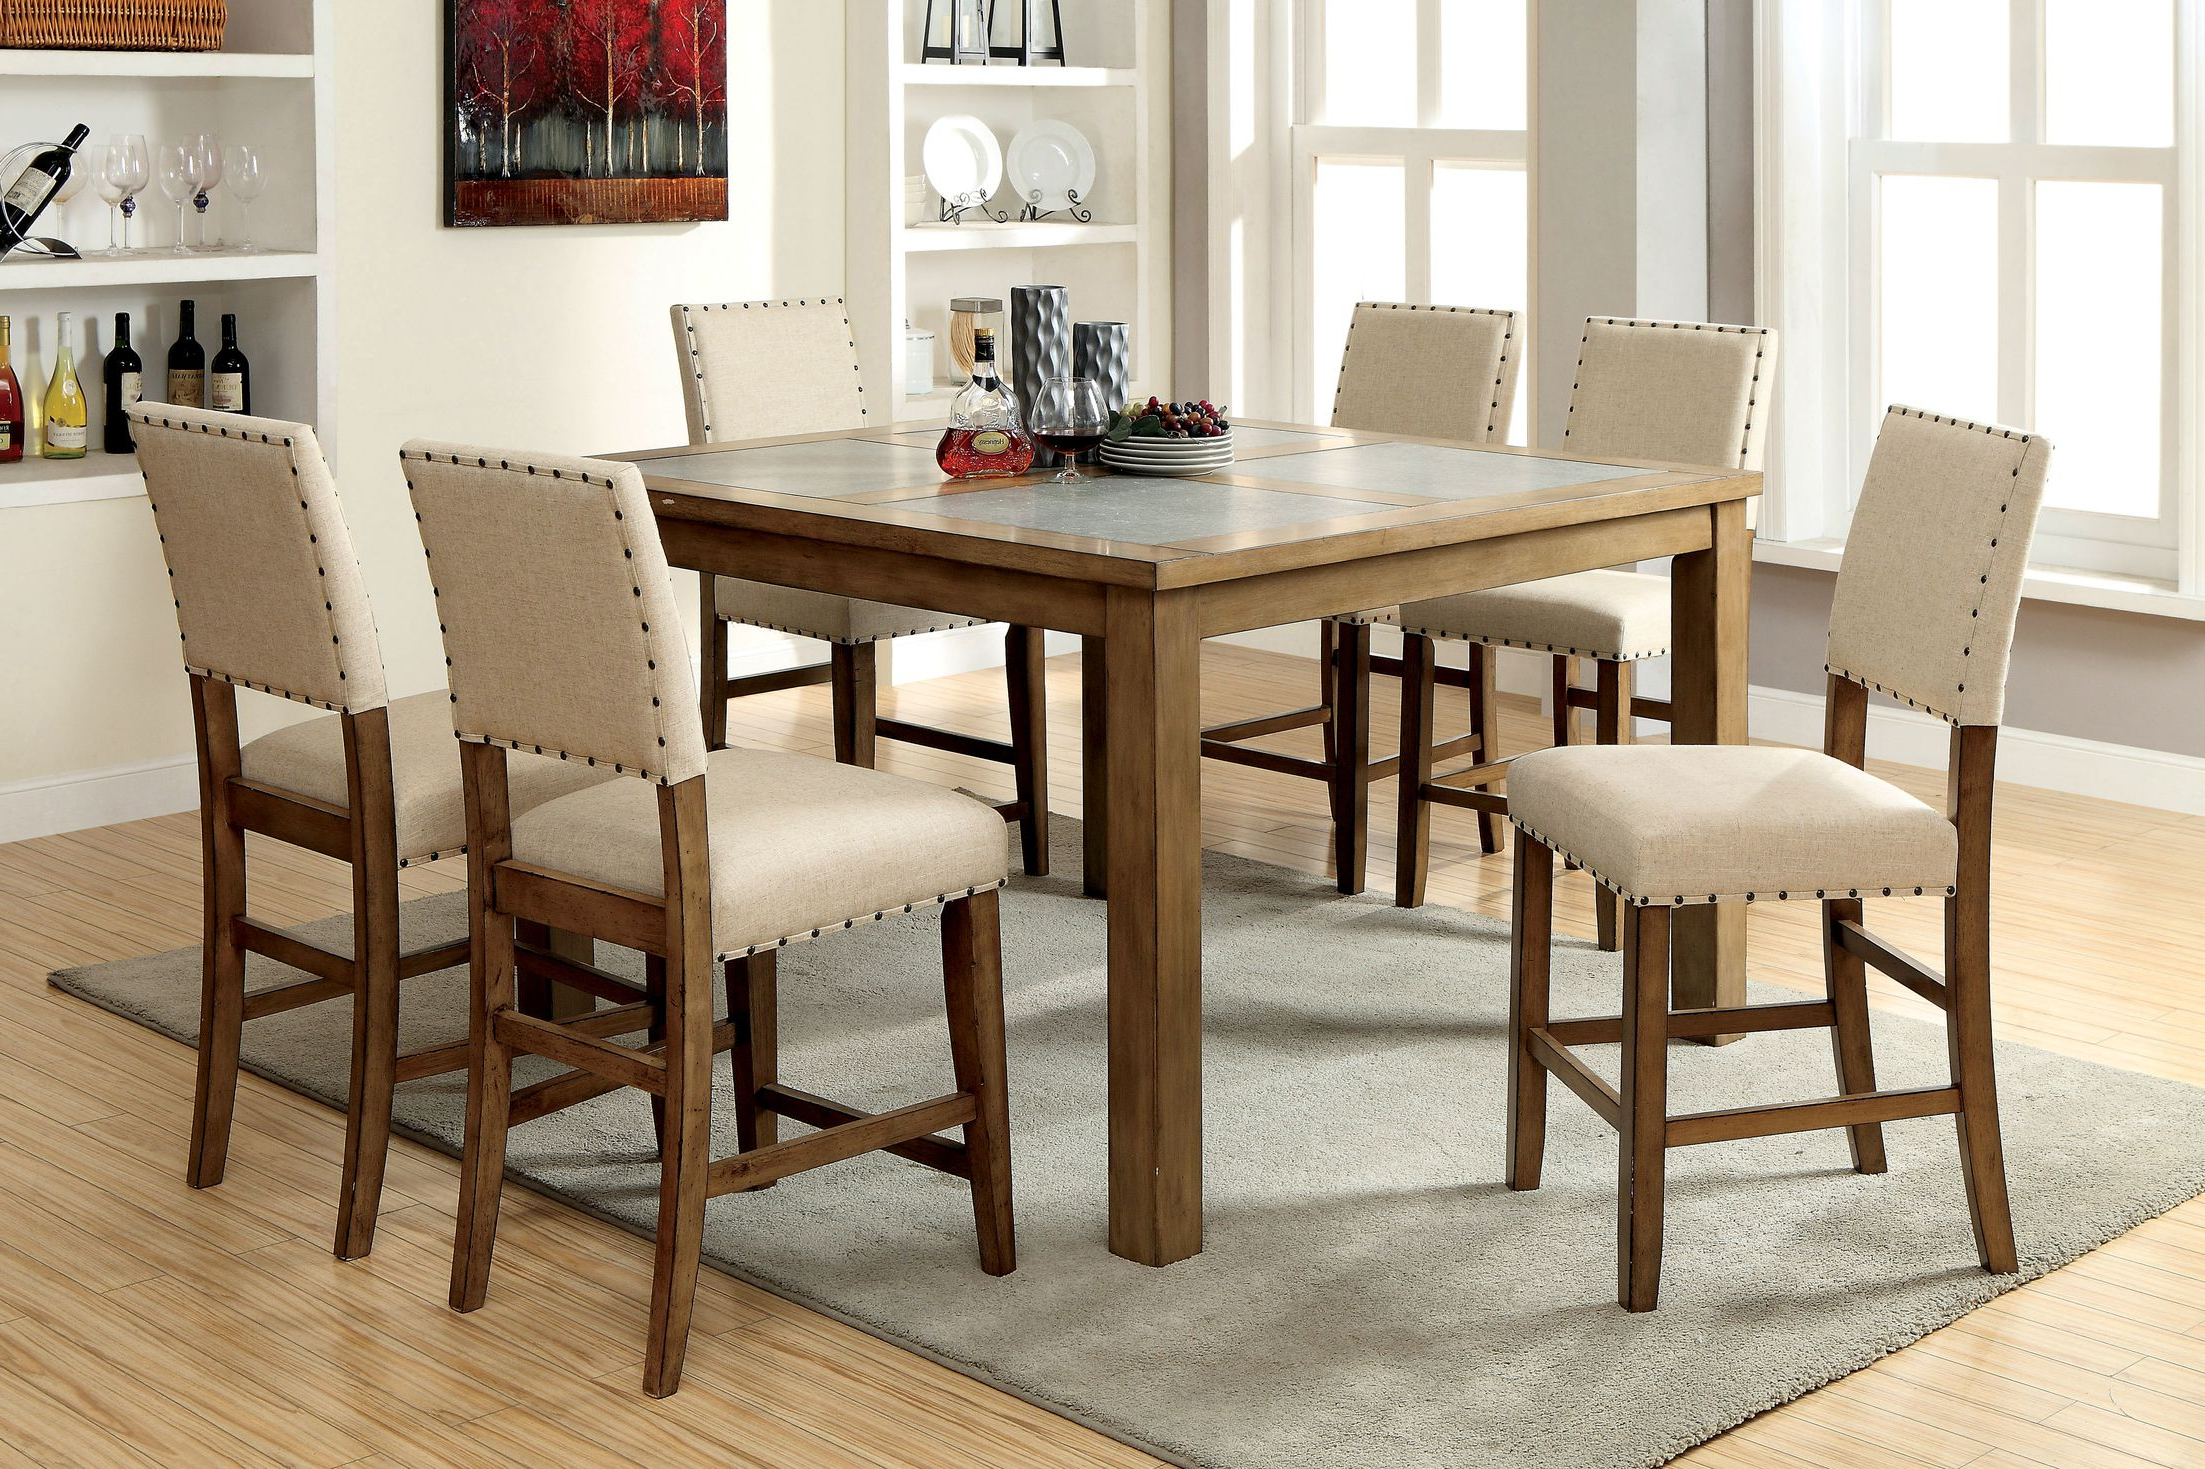 Dining Tables Crafton Counter Height Pub Dining Table March 2019 Throughout Well Known Castellanos Modern 5 Piece Counter Height Dining Sets (View 10 of 25)